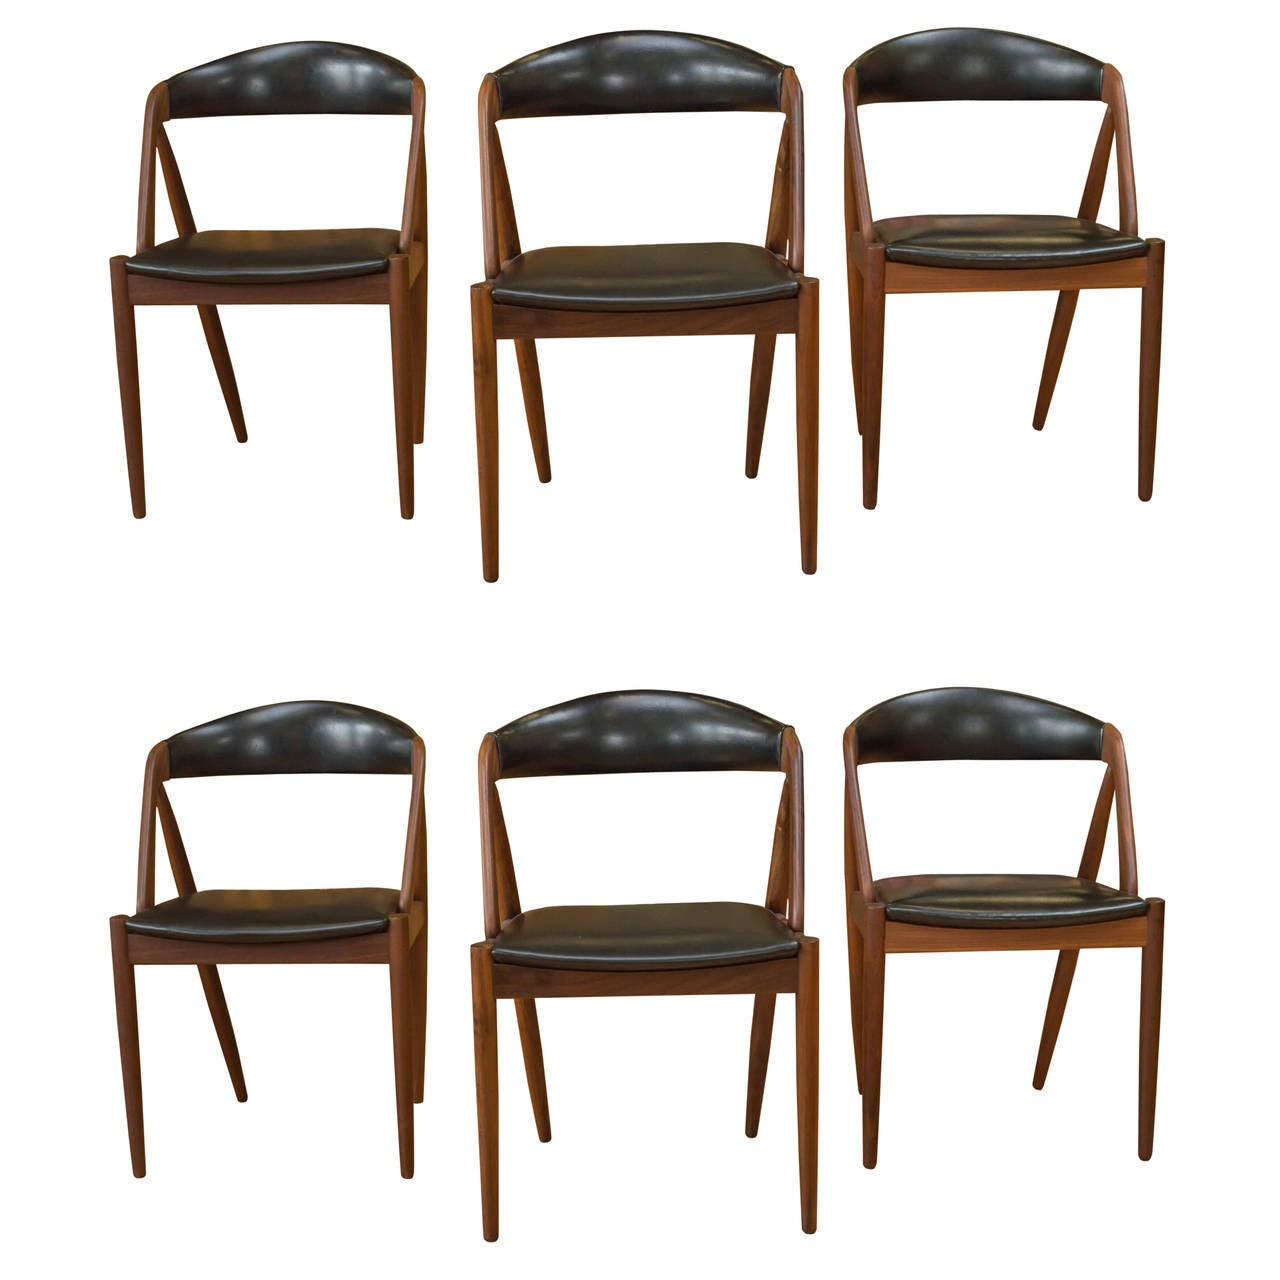 Six kai kristiansen teak chairs at 1stdibs - Kai kristiansen chairs ...